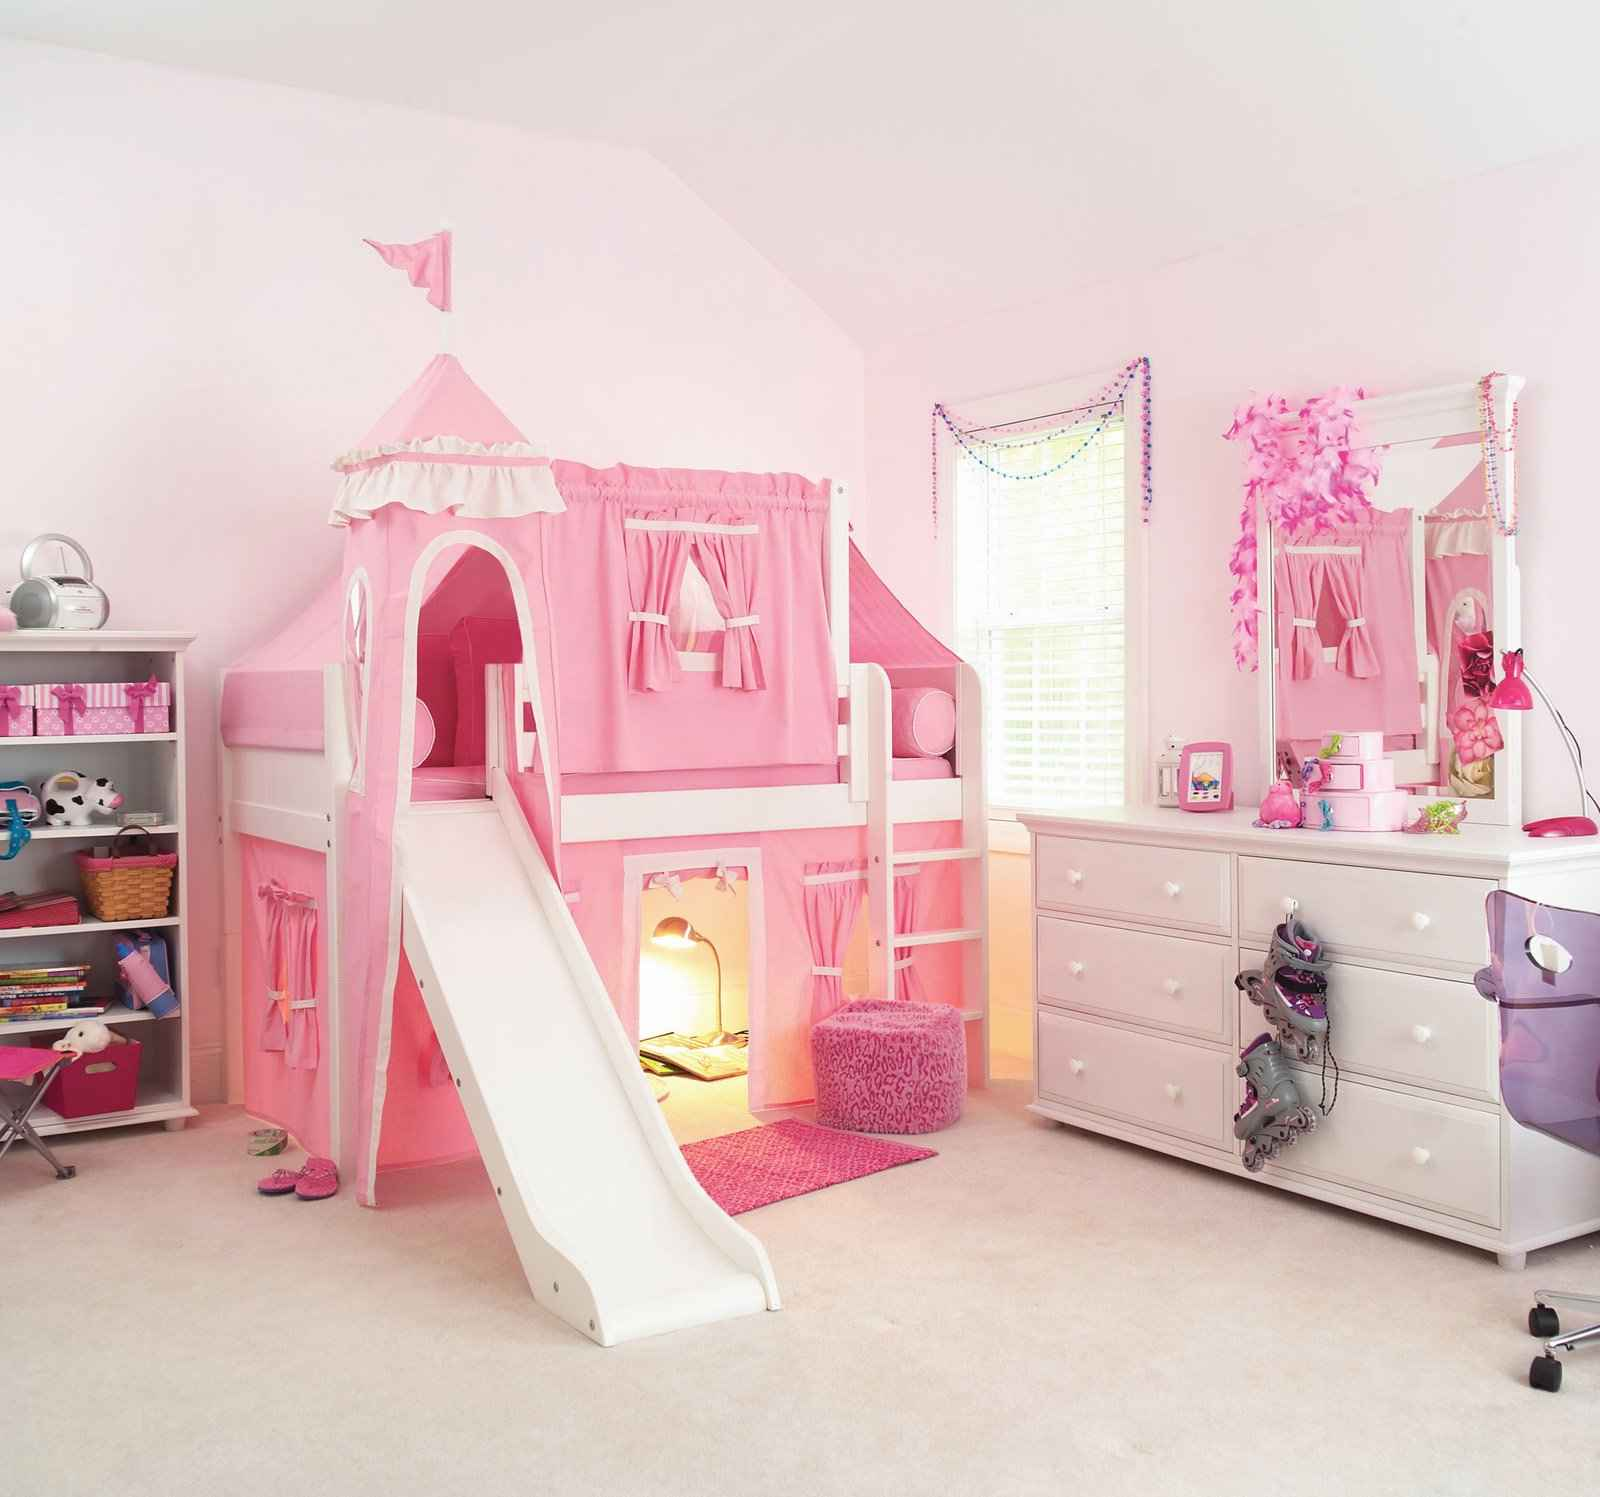 Cool Loft Beds for Girls images 8 Marvelous-deluxe-loft-castle-beds ...